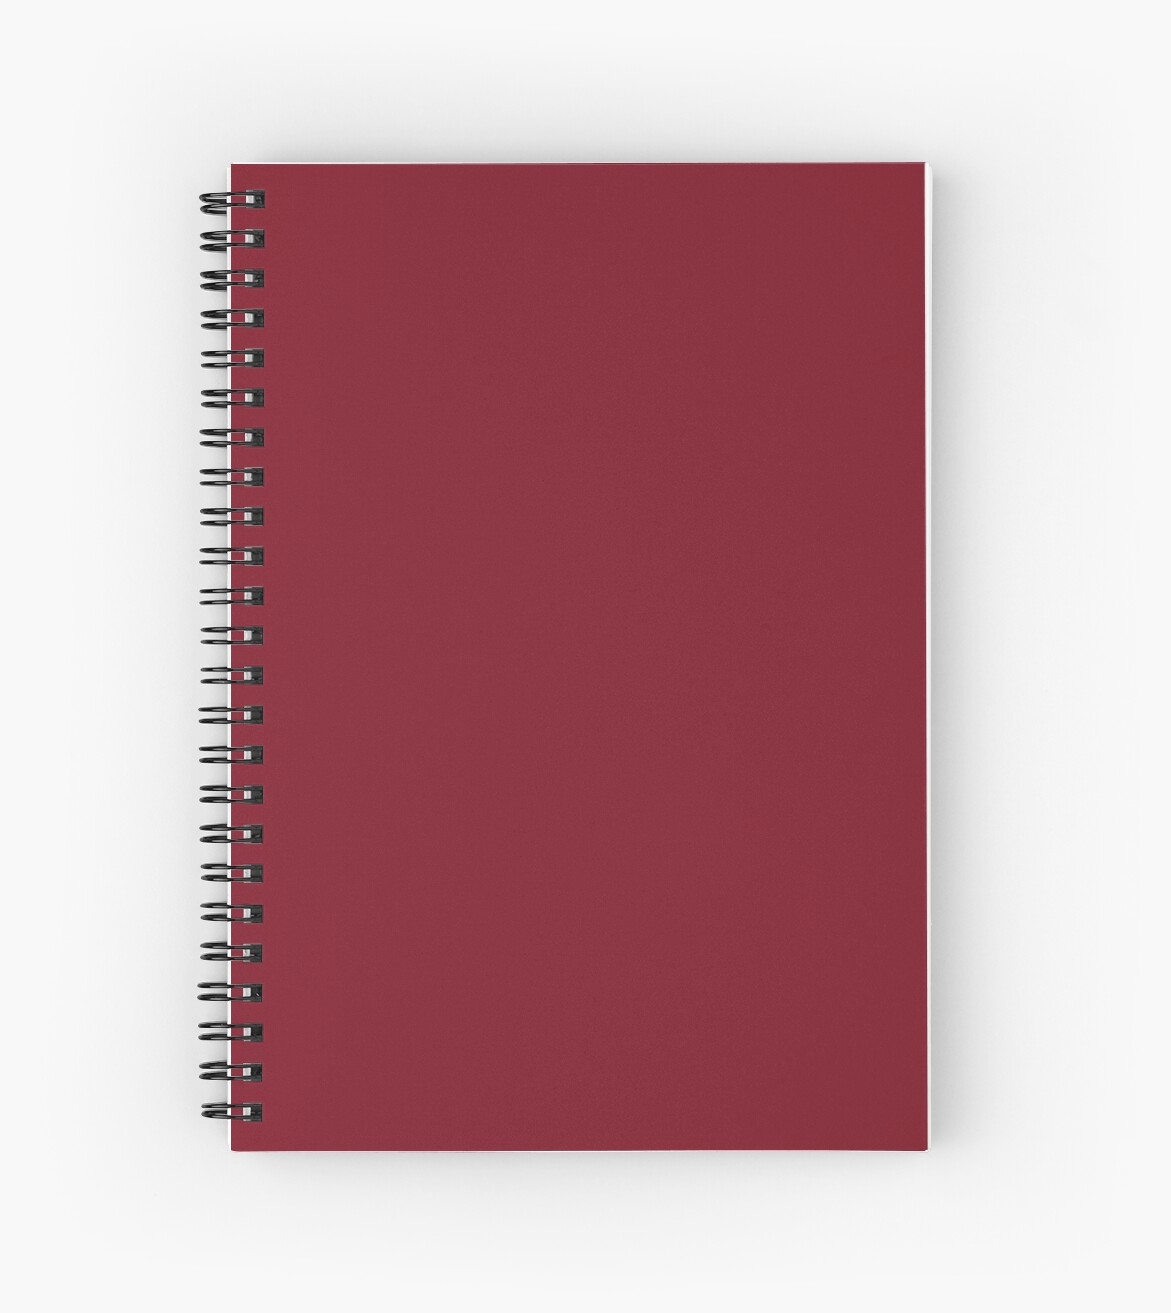 Color Trends Fall 2018 Deep Dark Red Pear 2018 Fall Winter Color Trends Spiral Notebook By Podartist